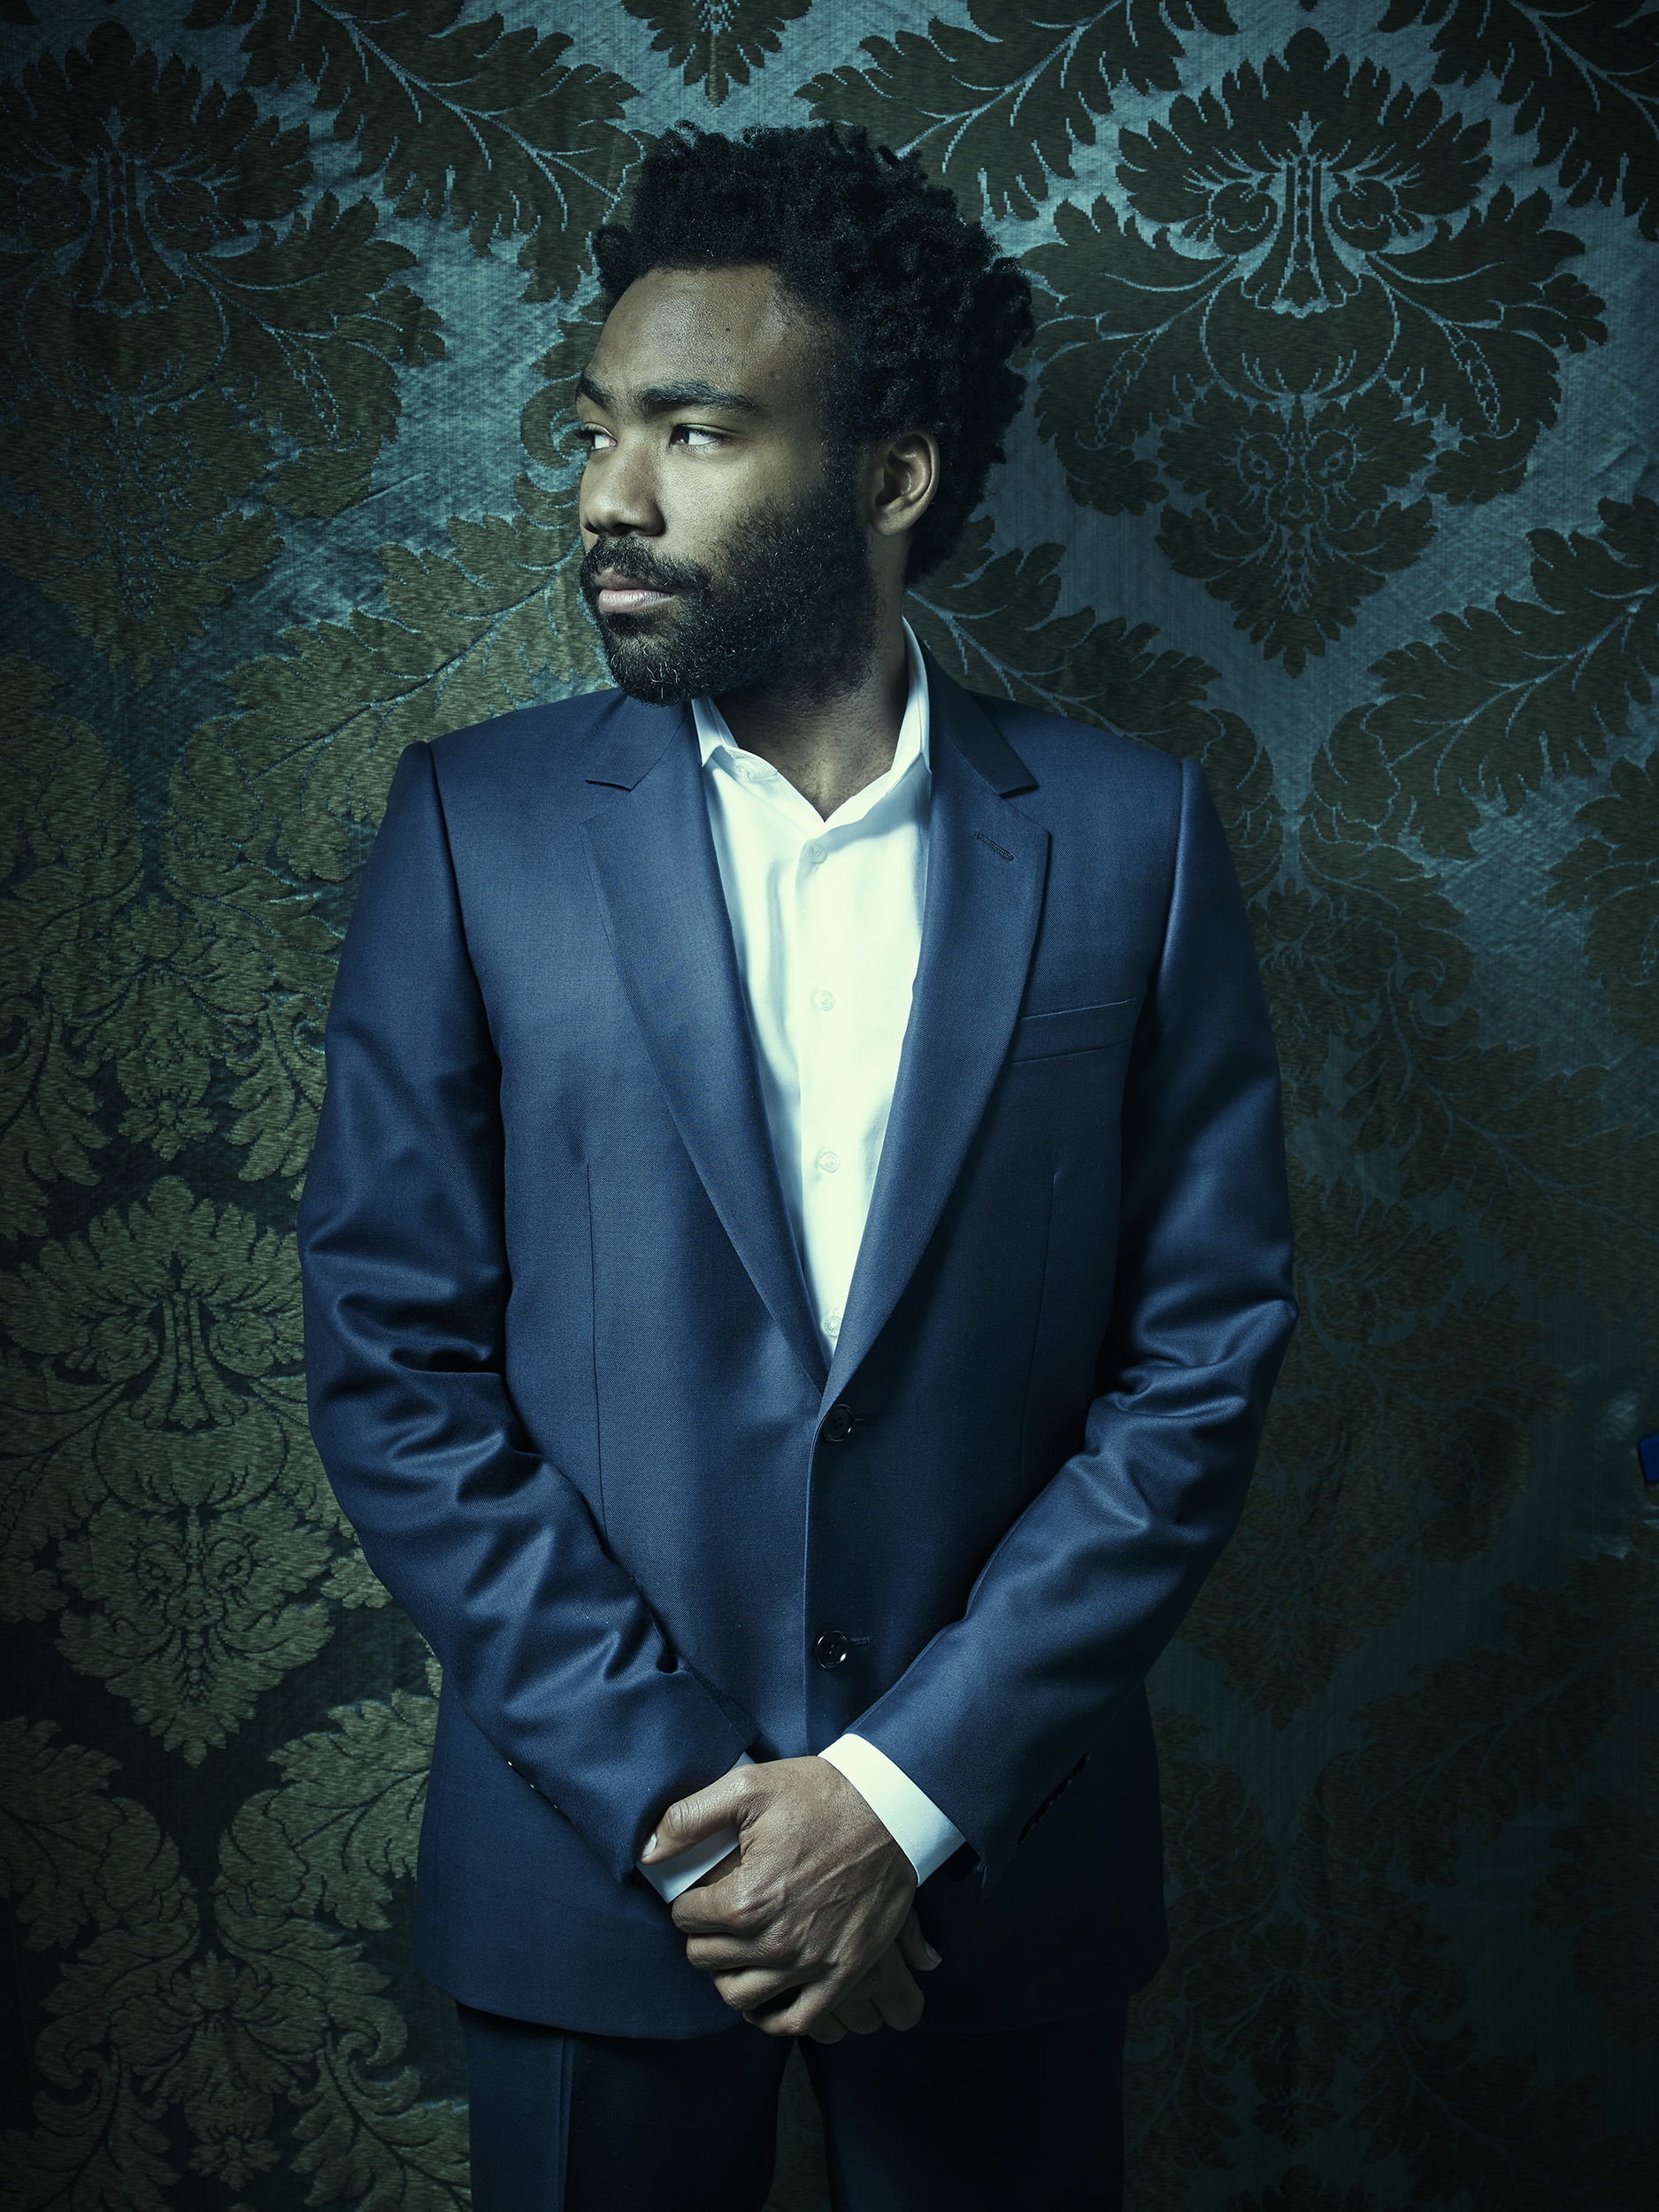 Donald_Glover_01-0091